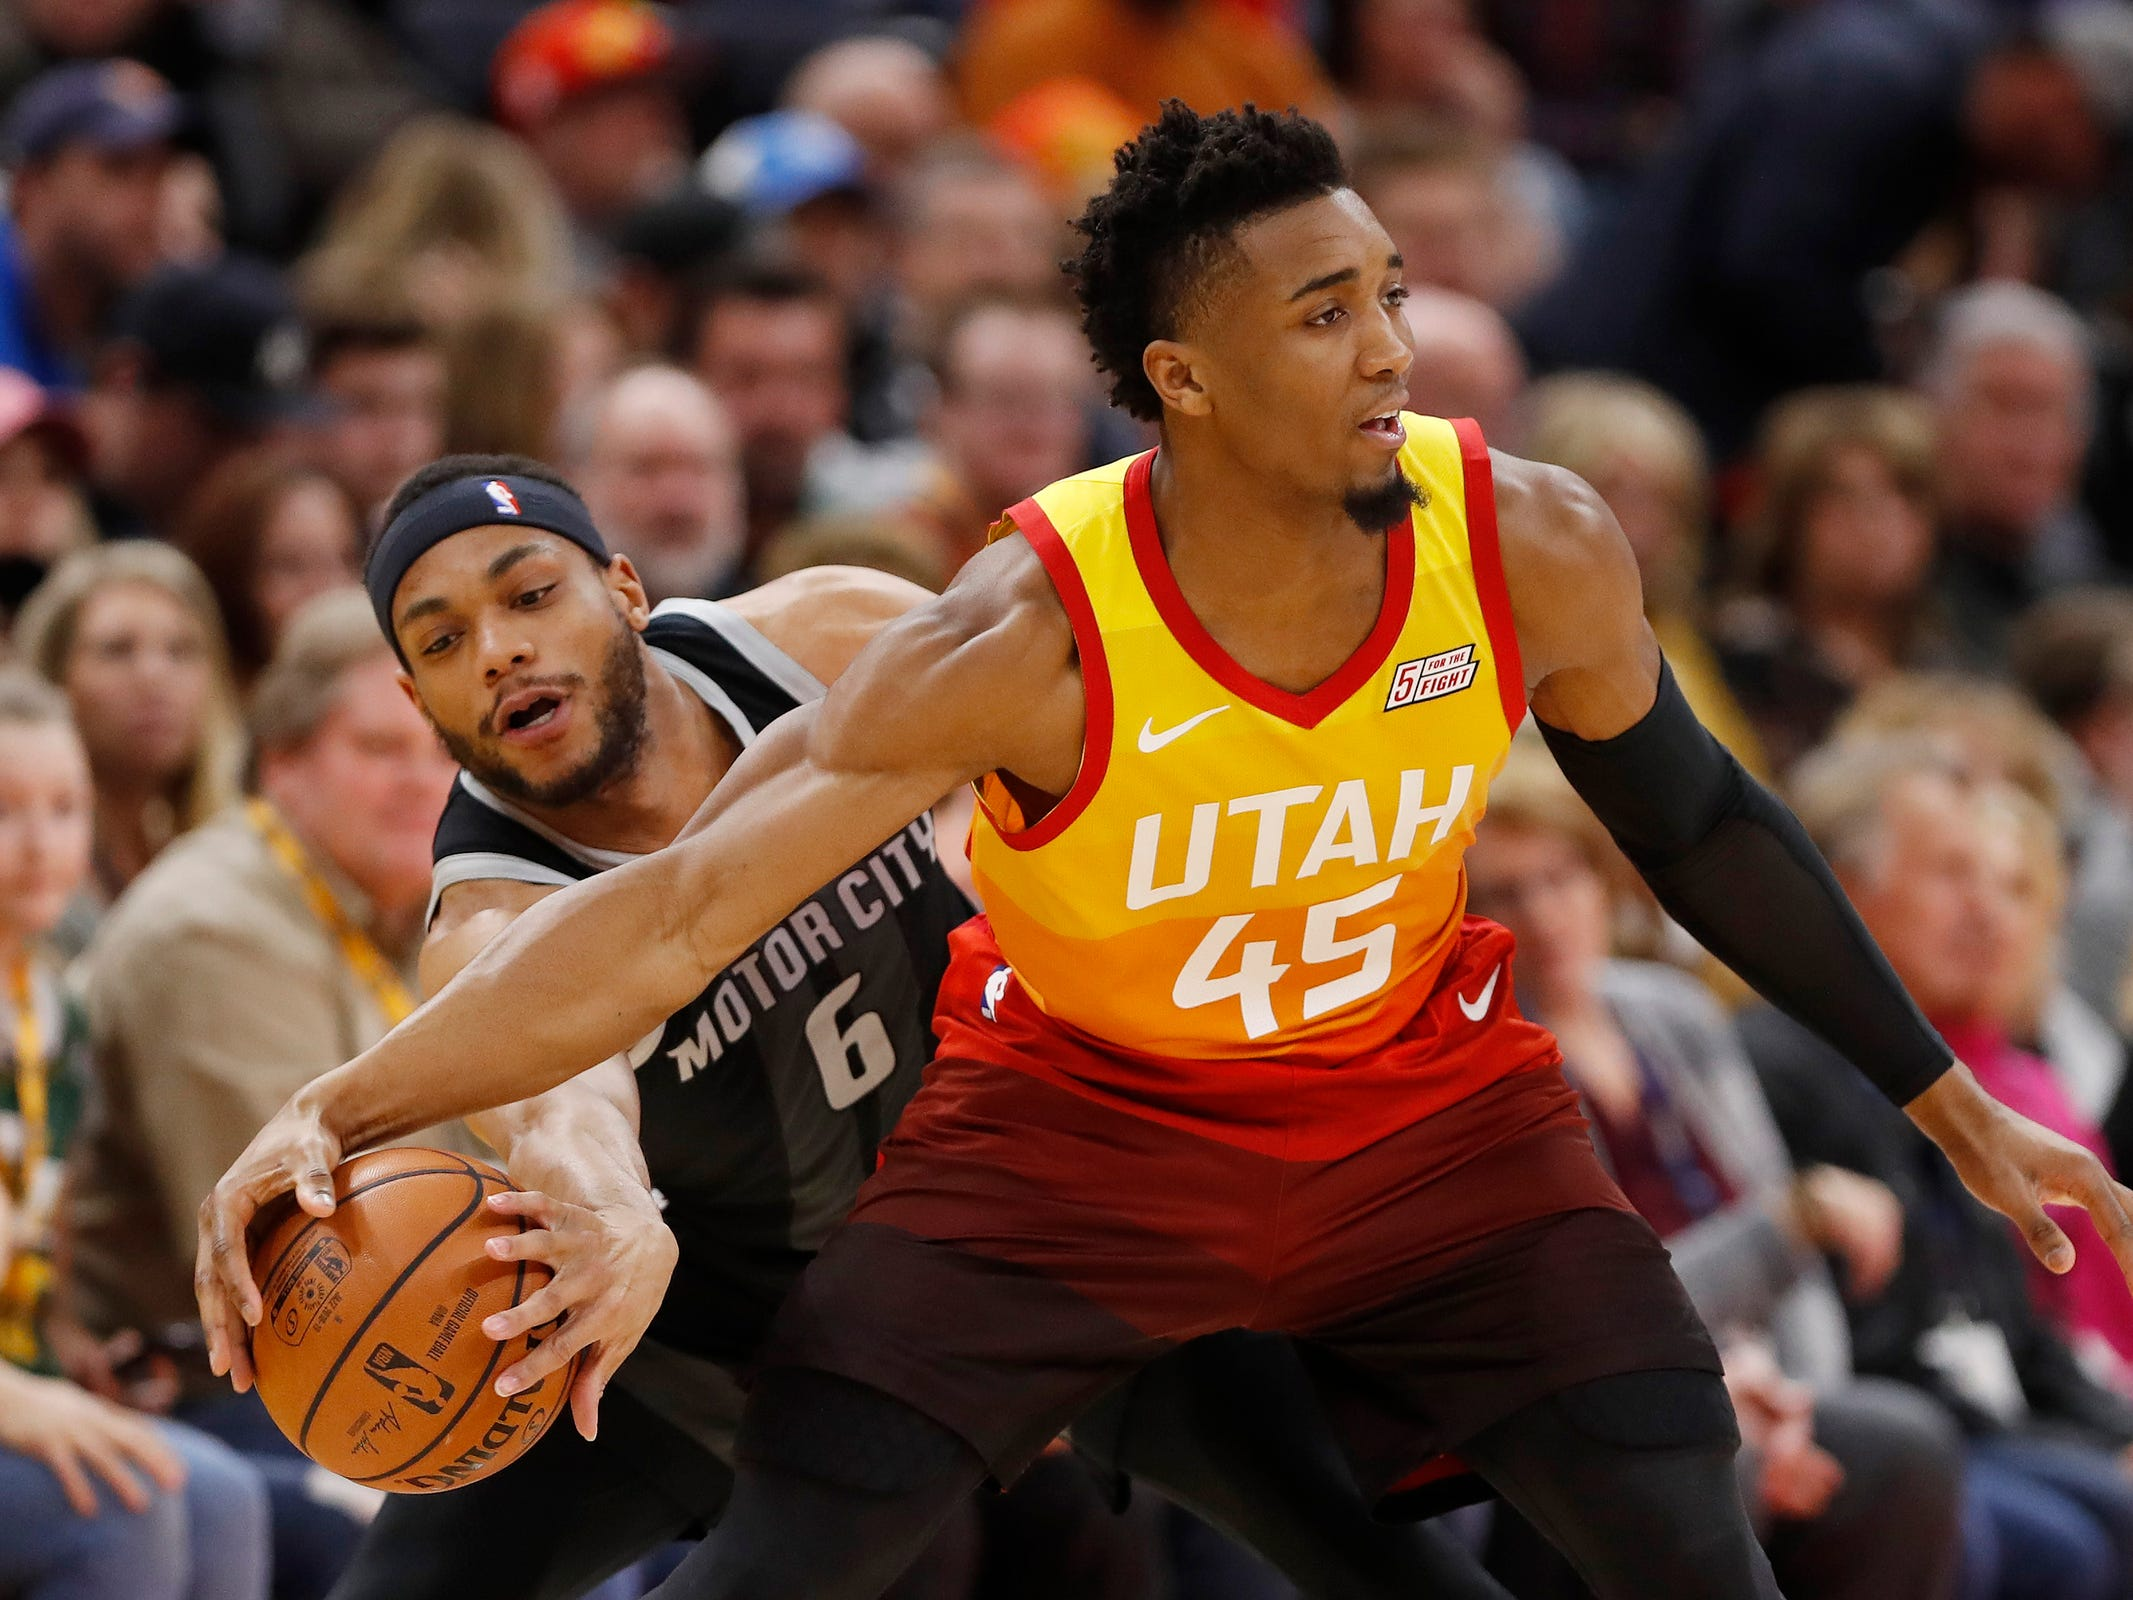 Detroit Pistons guard Bruce Brown looks to steal the ball from Utah Jazz guard Donovan Mitchell in the first half Monday, Jan. 14, 2019, in Salt Lake City.